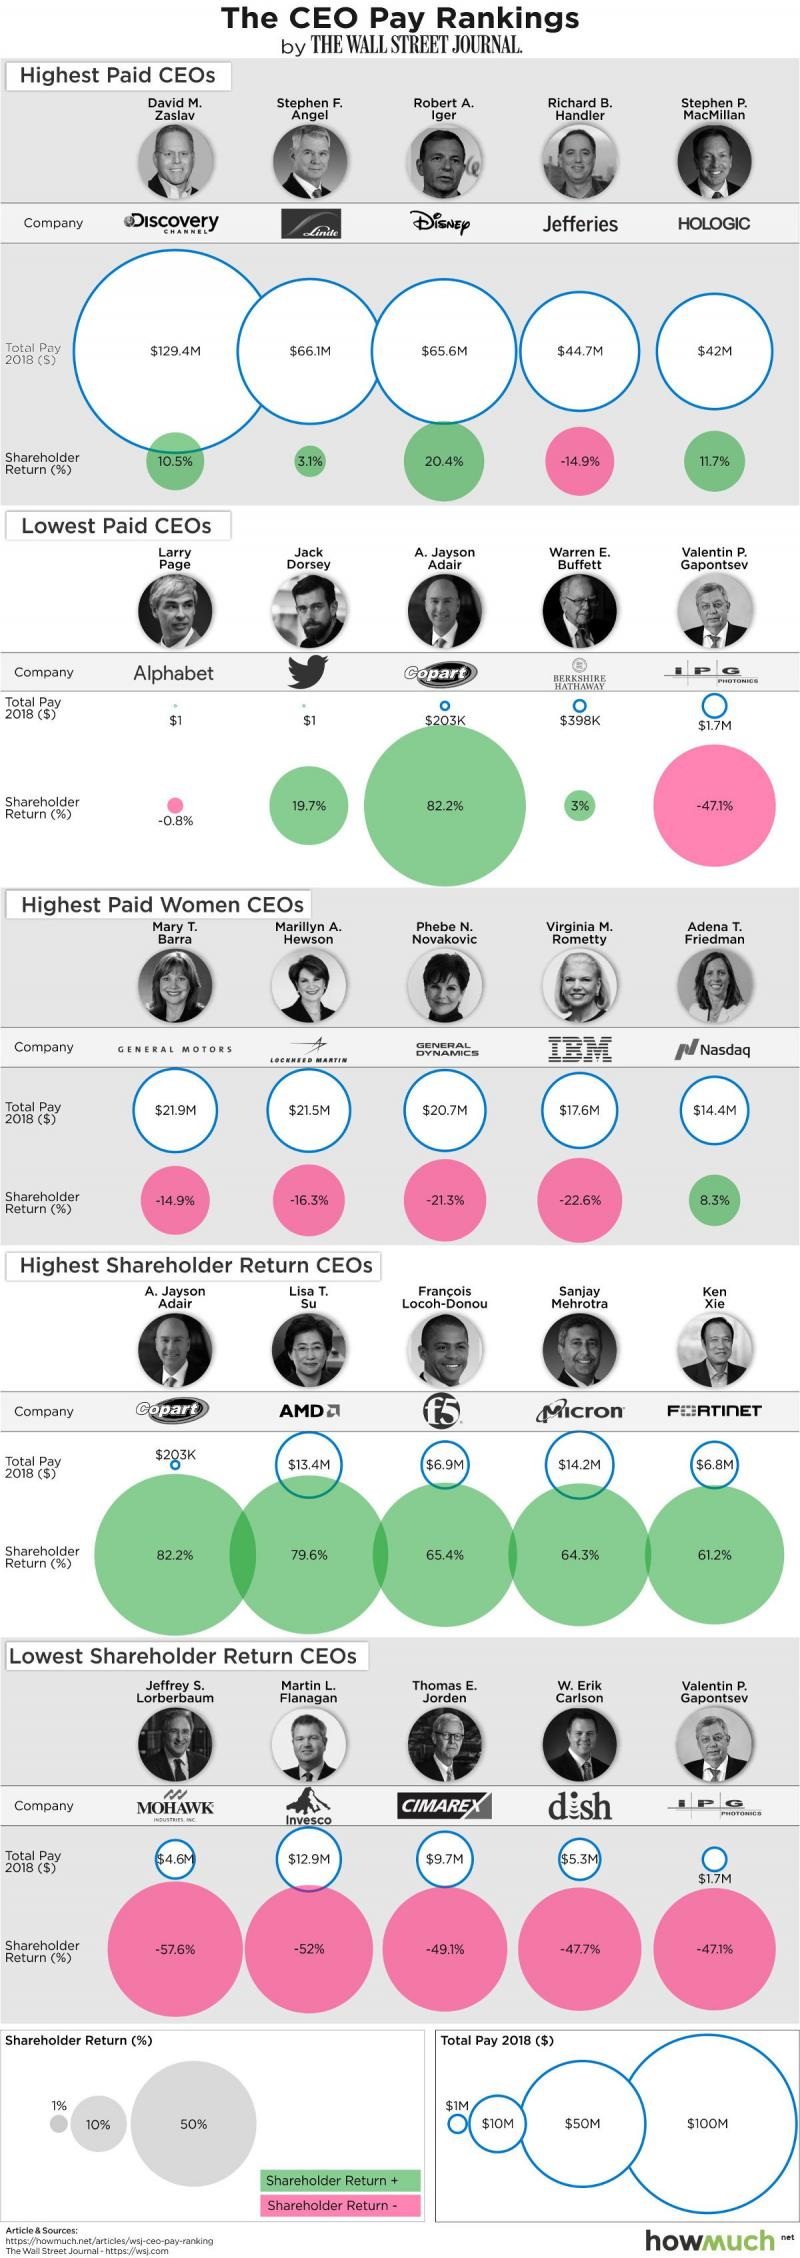 How Much the Top CEOs of the fortune 500 Companies Get Paid #Infographic